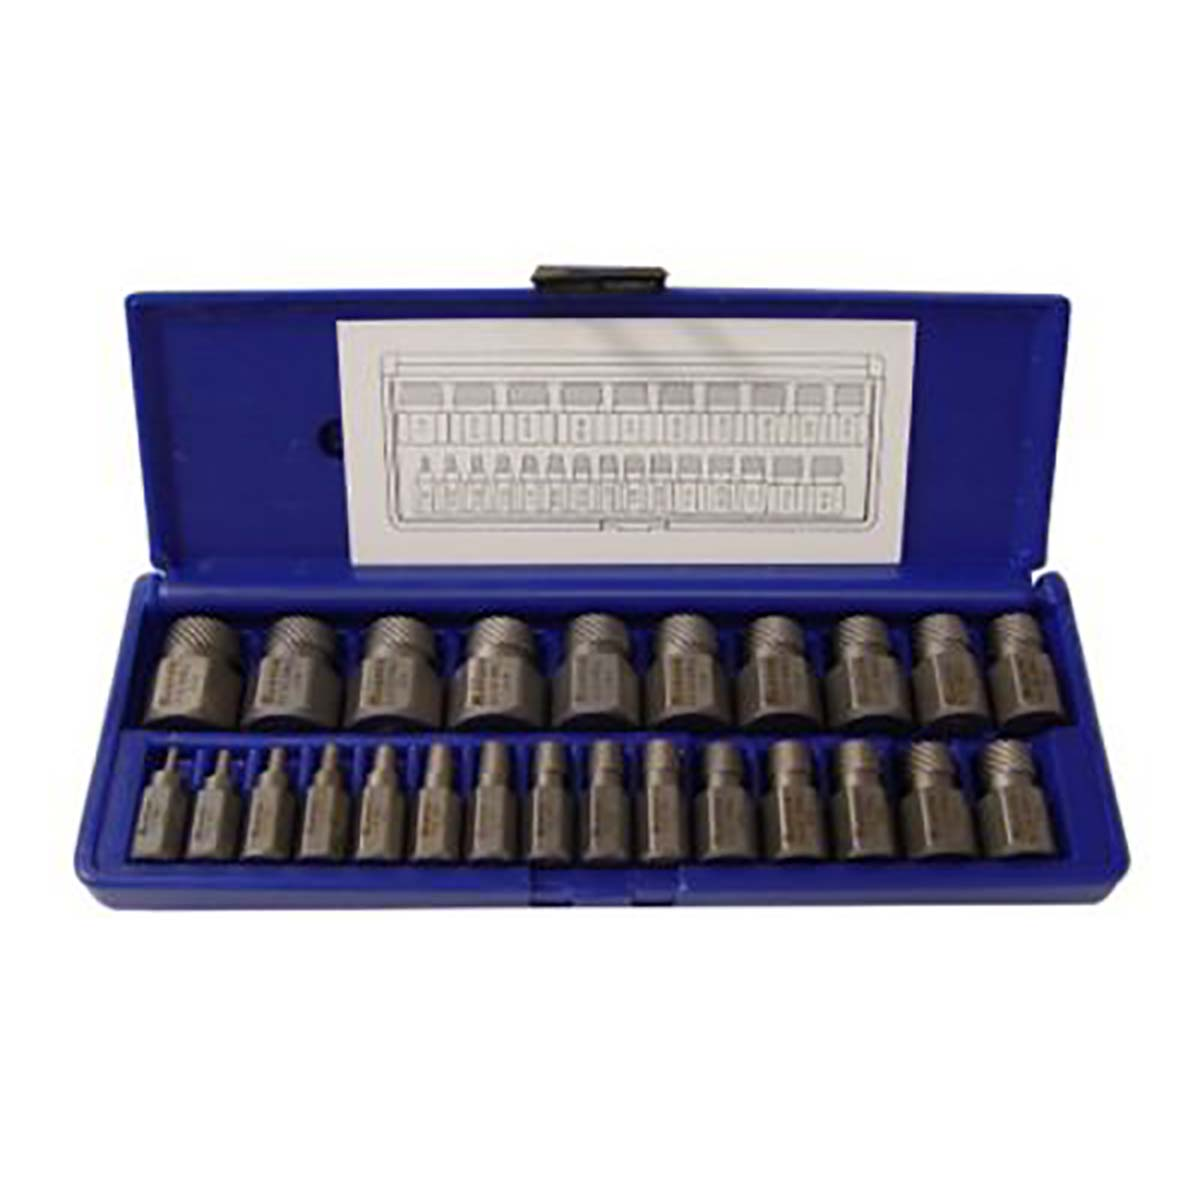 IRWIN HANSON 53227 Hex Head Multi-Spline Screw Extractor Set, 25 Piece